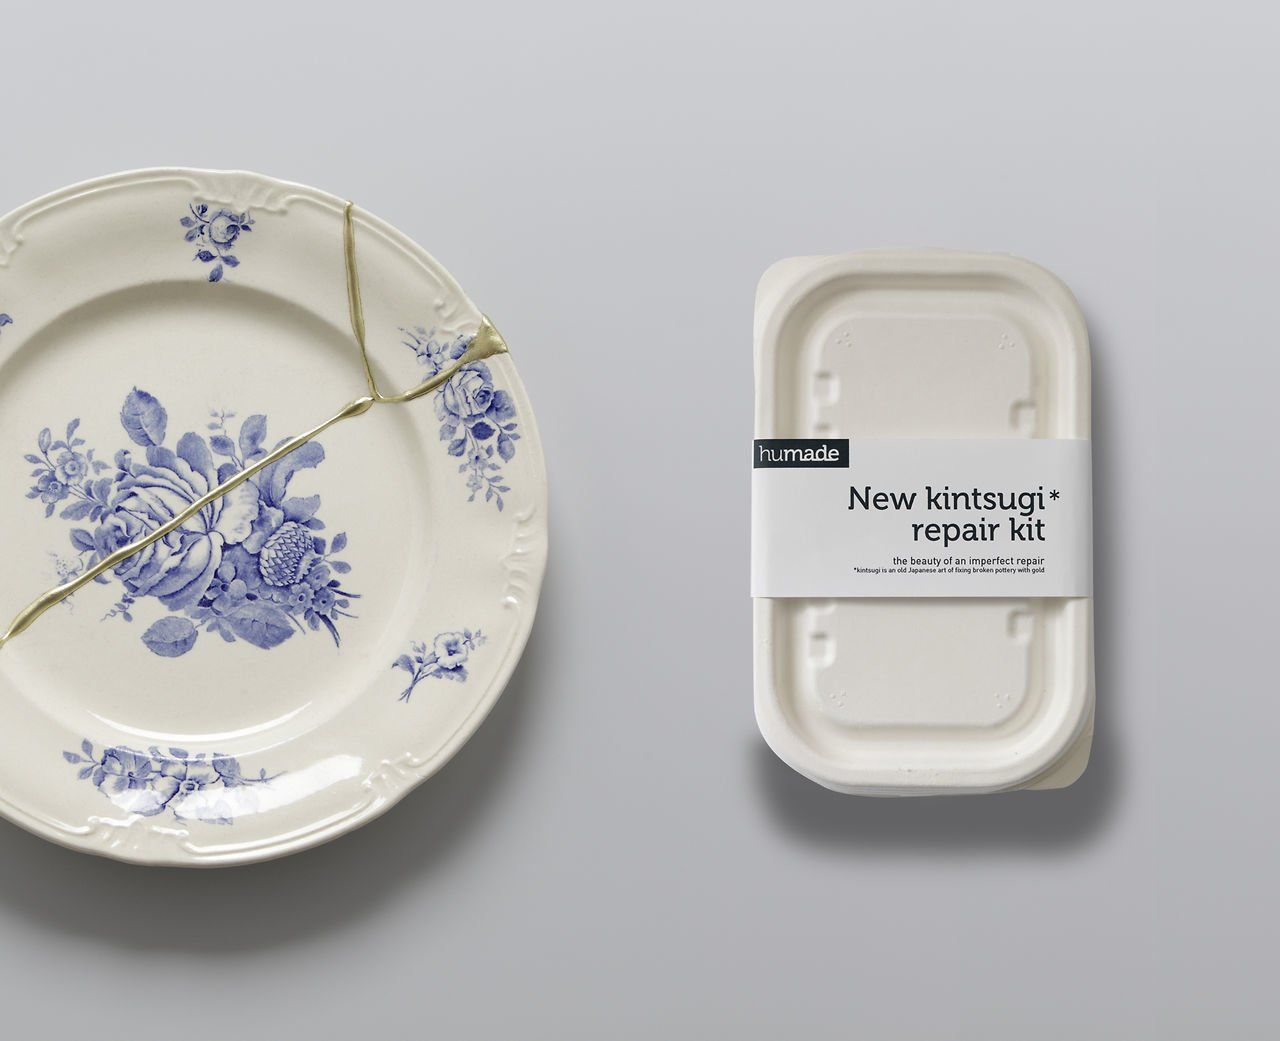 New Kintsugi gold repair by Humade. A new western way of gluing ceramics with gold based on an old Japanese technique kintsugi. & New Kintsugi gold repair | Kintsugi Craft and Creativity